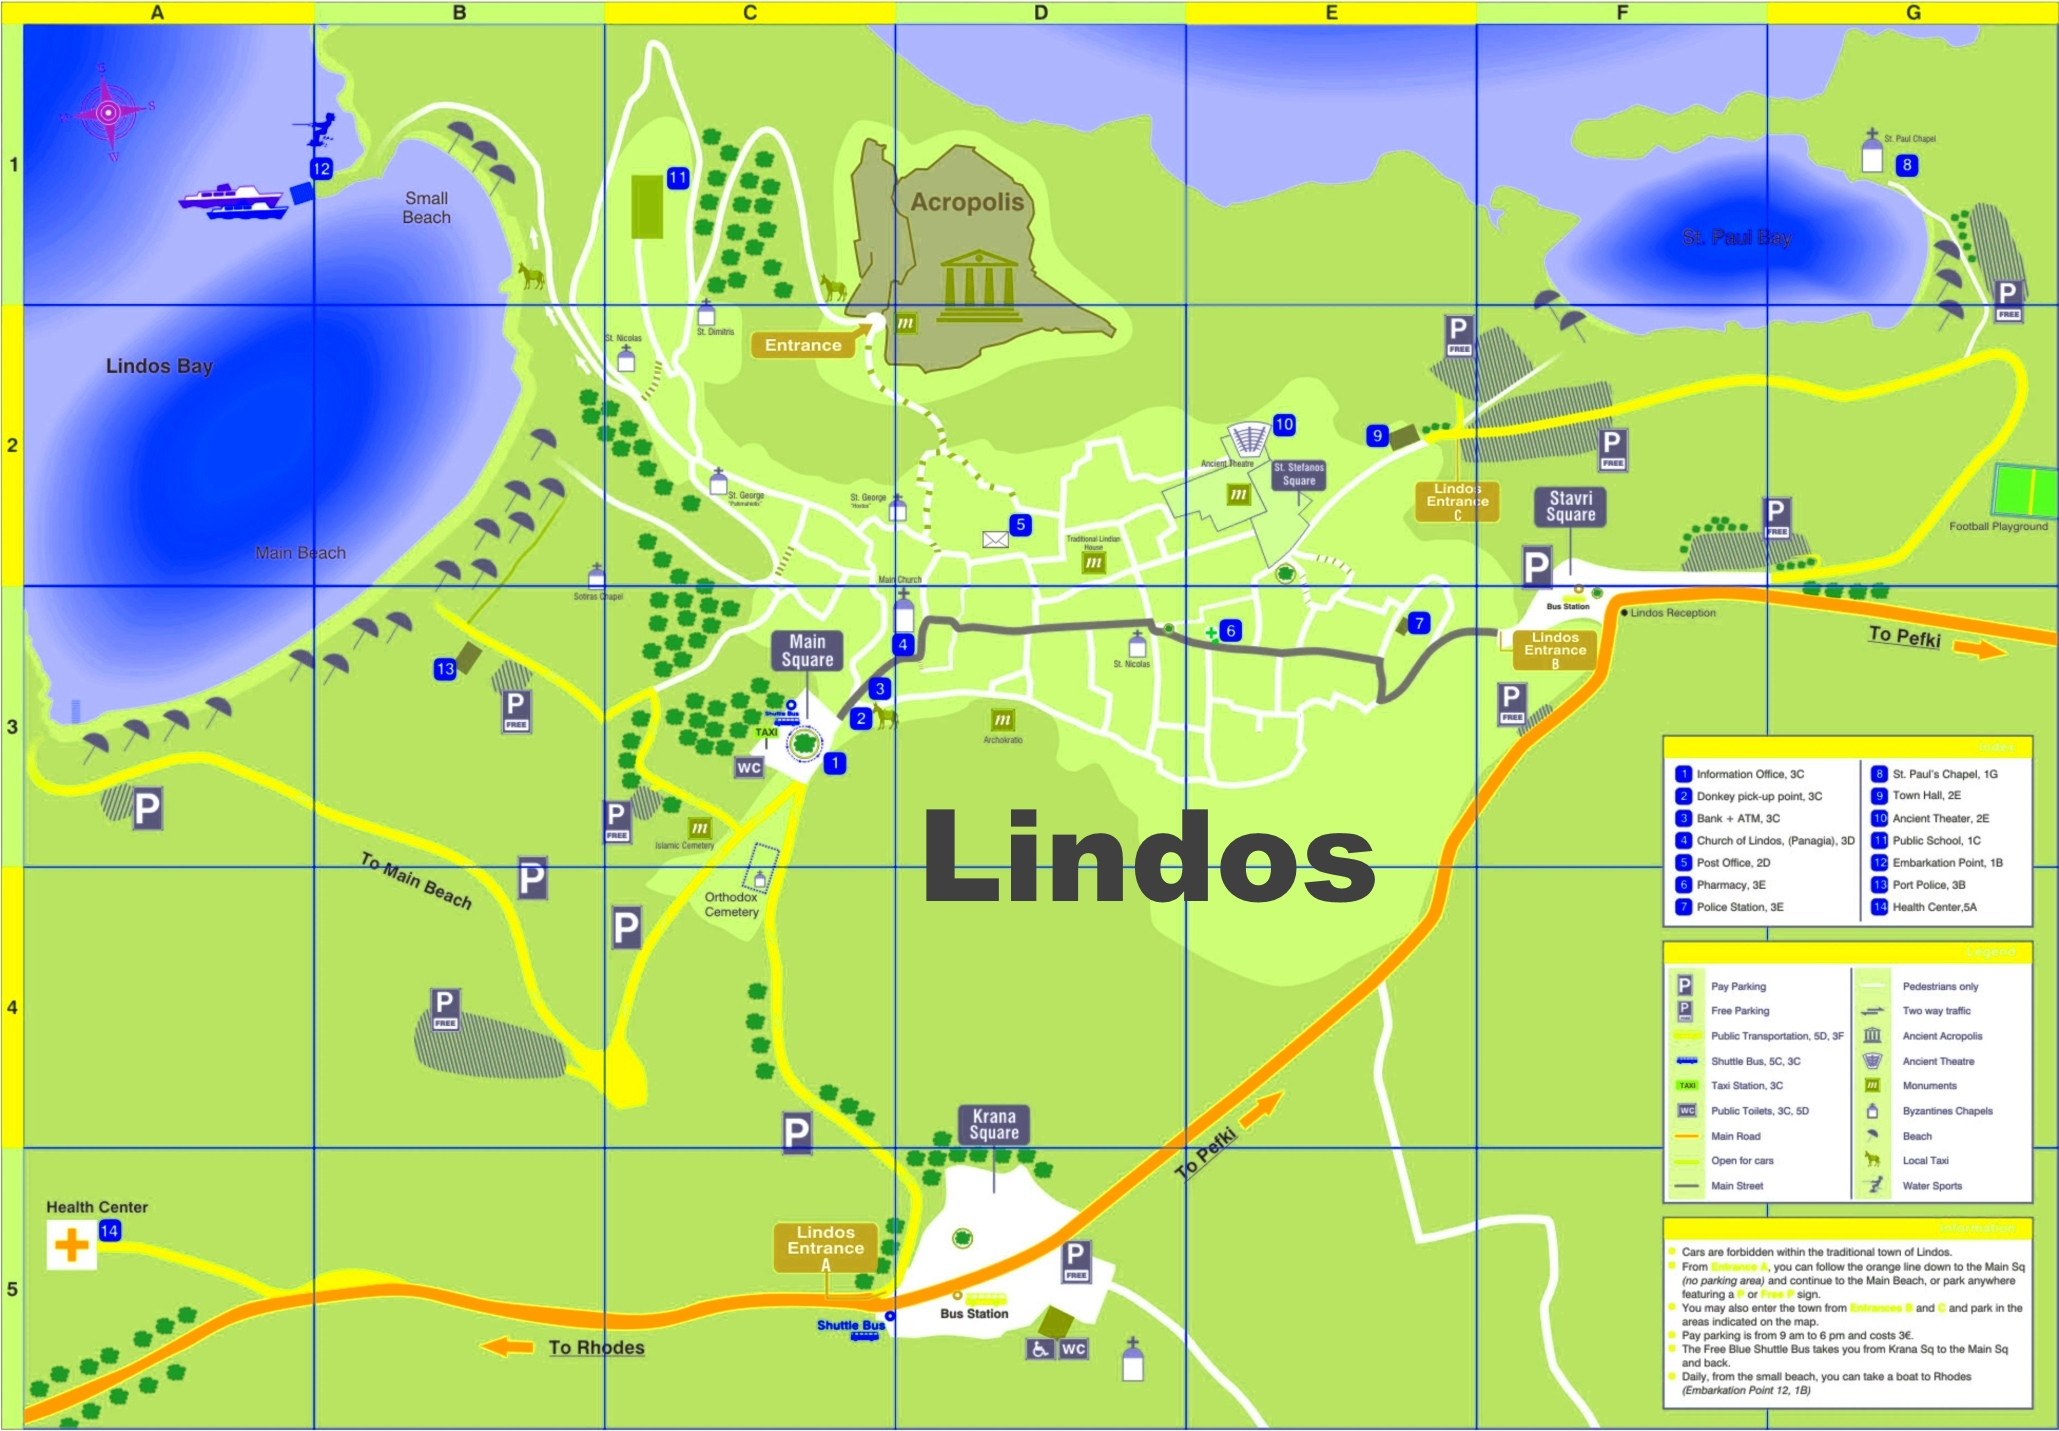 Lindos tourist map